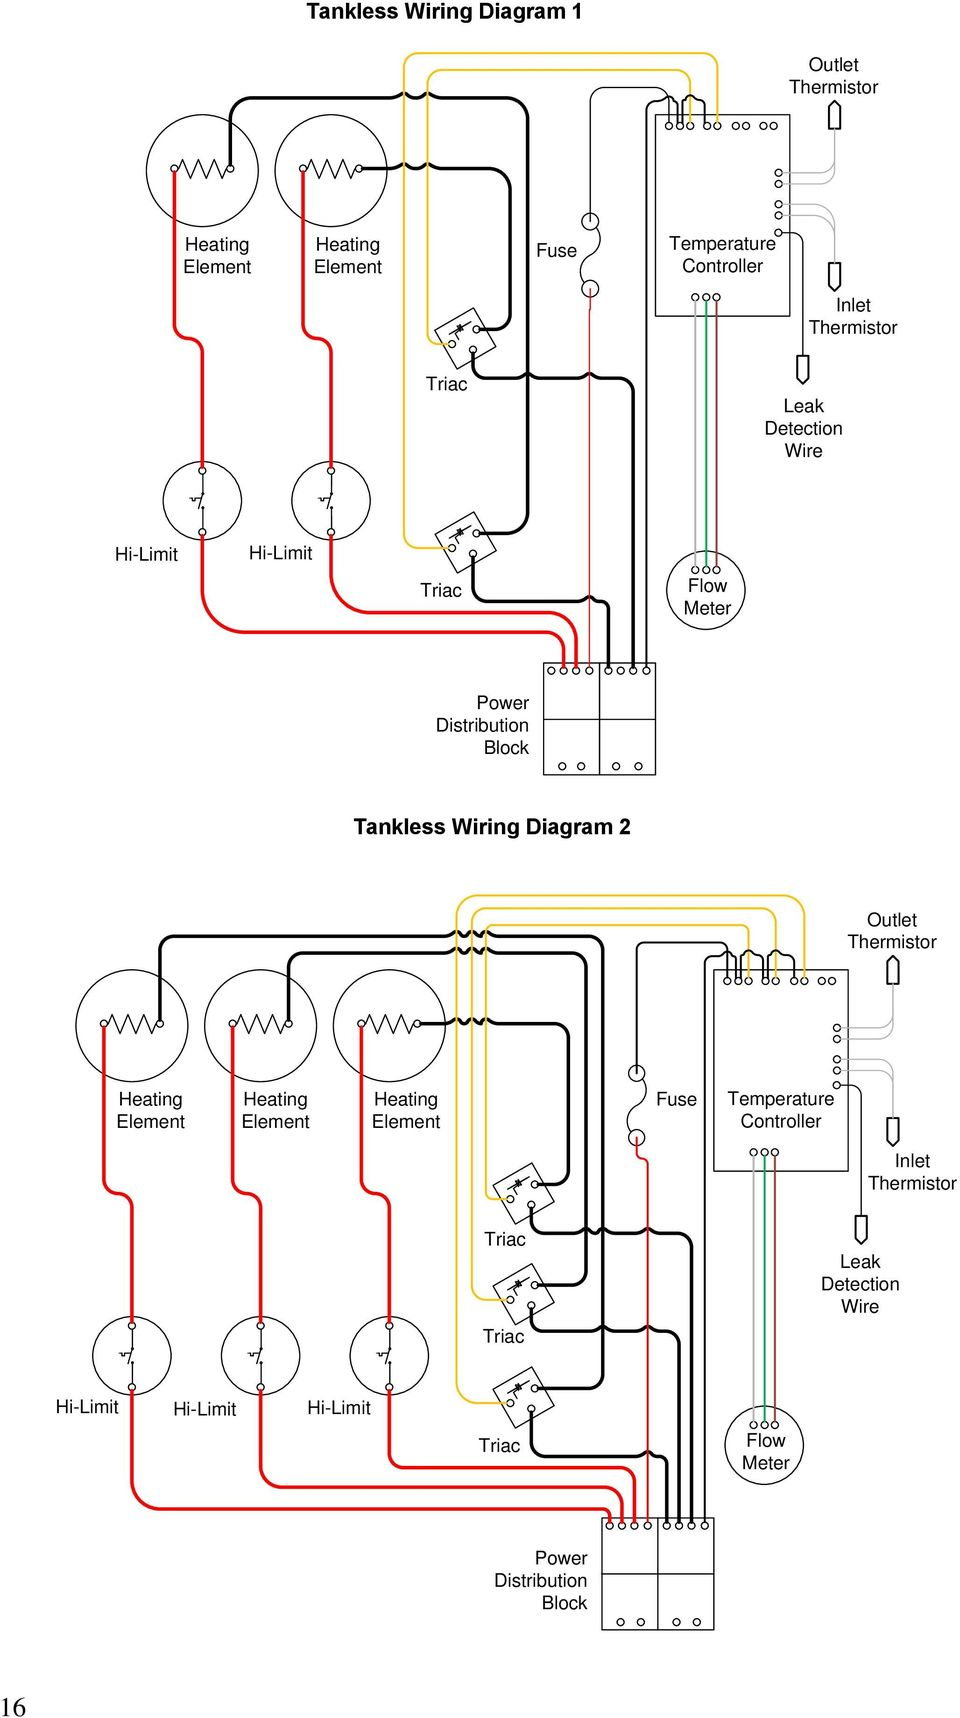 installation operation and maintenance manual for the hubbell tankless wiring diagram 2 outlet fuse temperature controller inlet leak